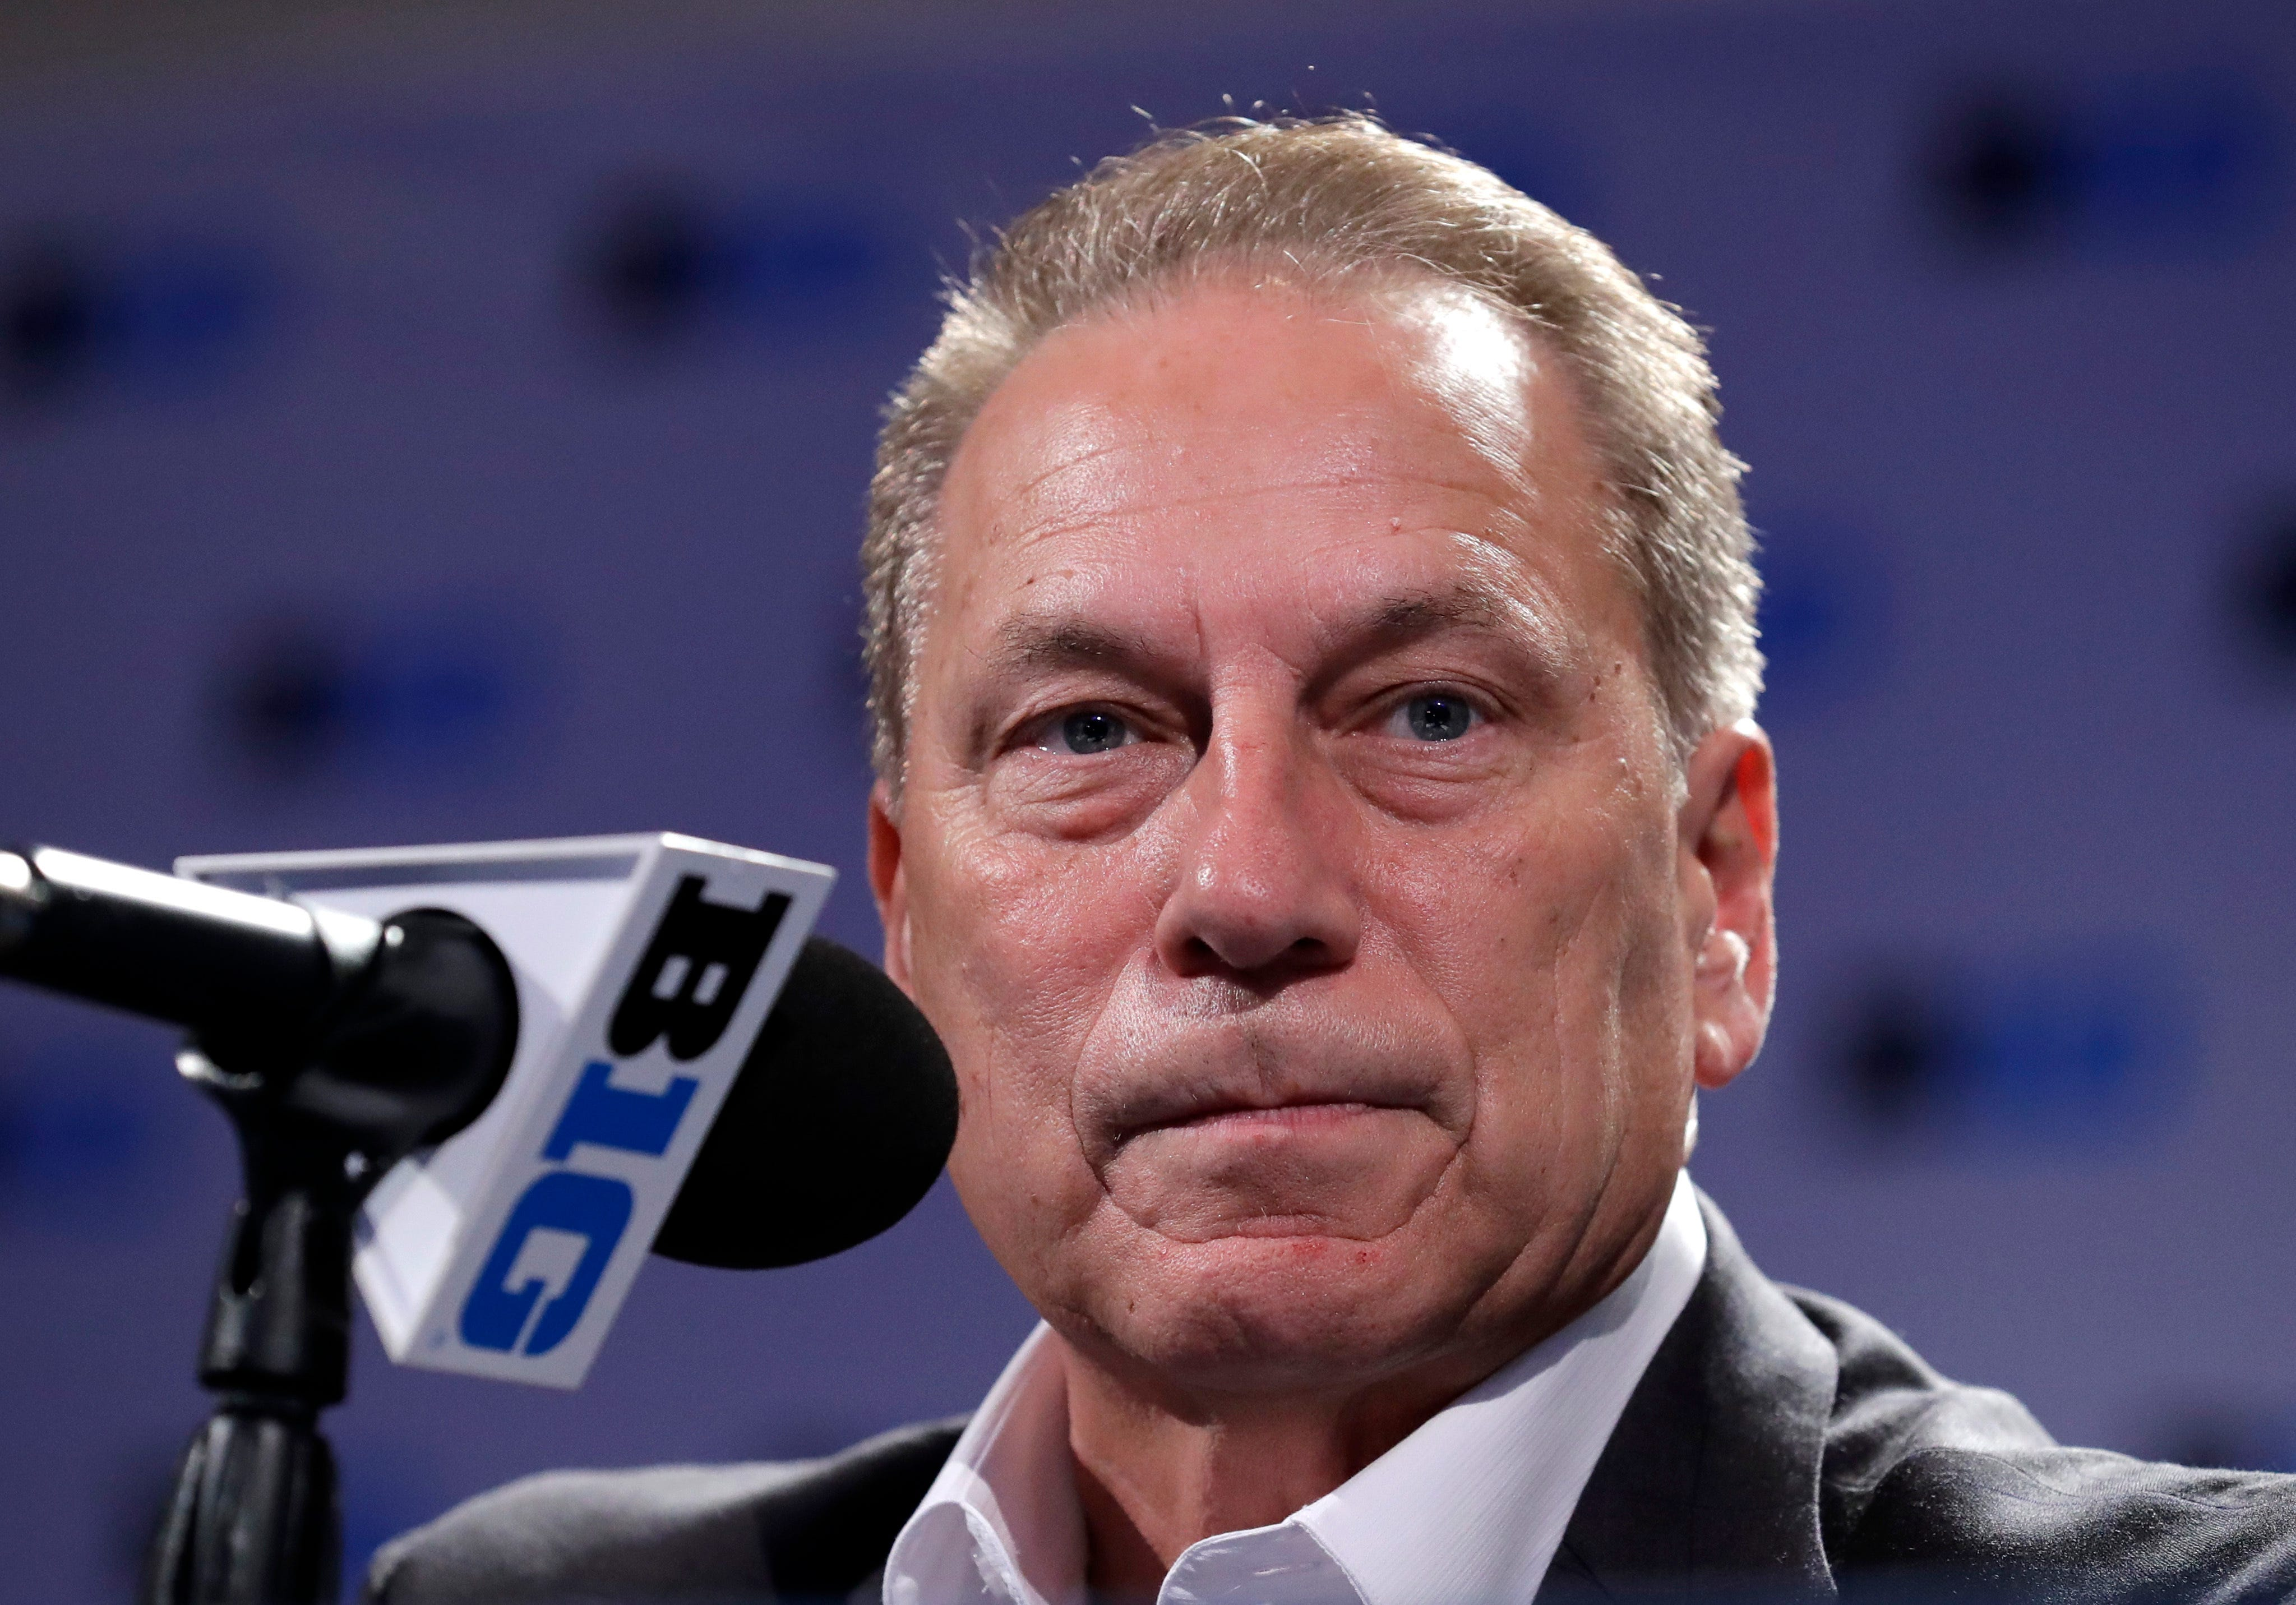 Izzo says he never tried to cover up sex assault allegations